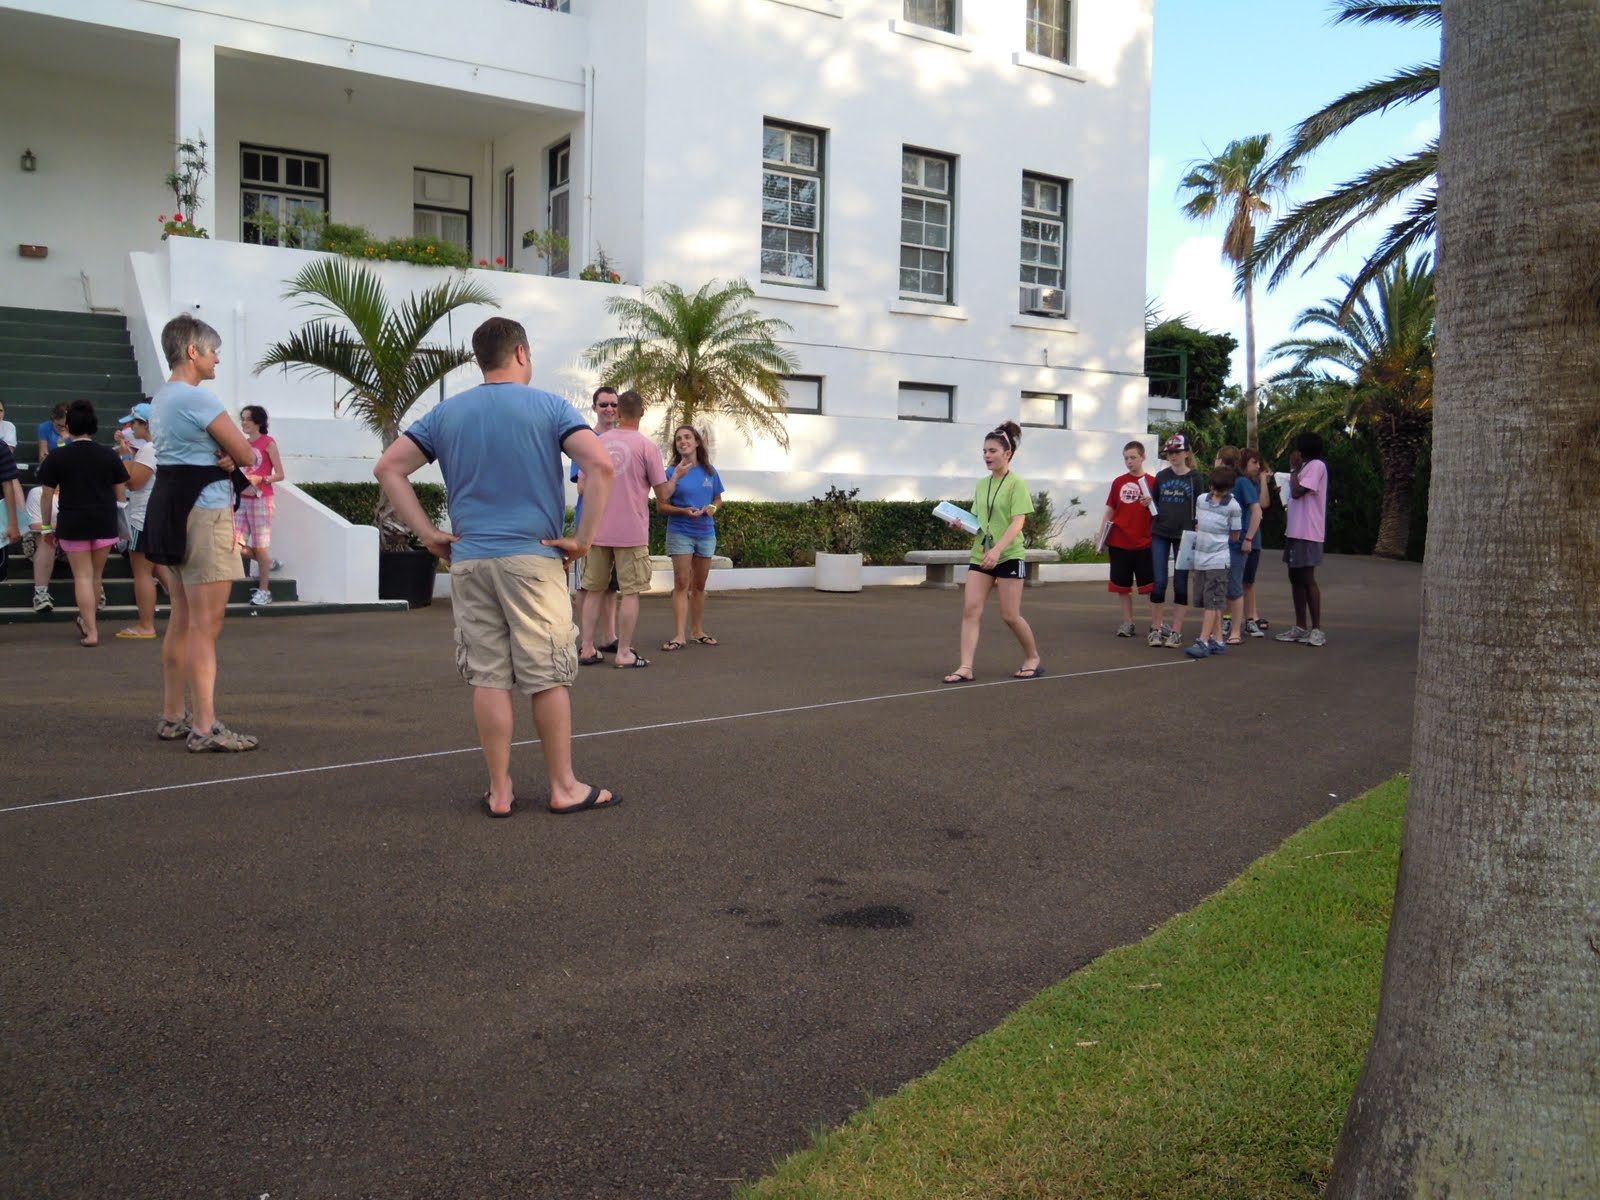 Vernon Bermuda Workshop 2011 Andrew Smith Shorts Cokelat 33 We Also Saw How Long Our Strides Were